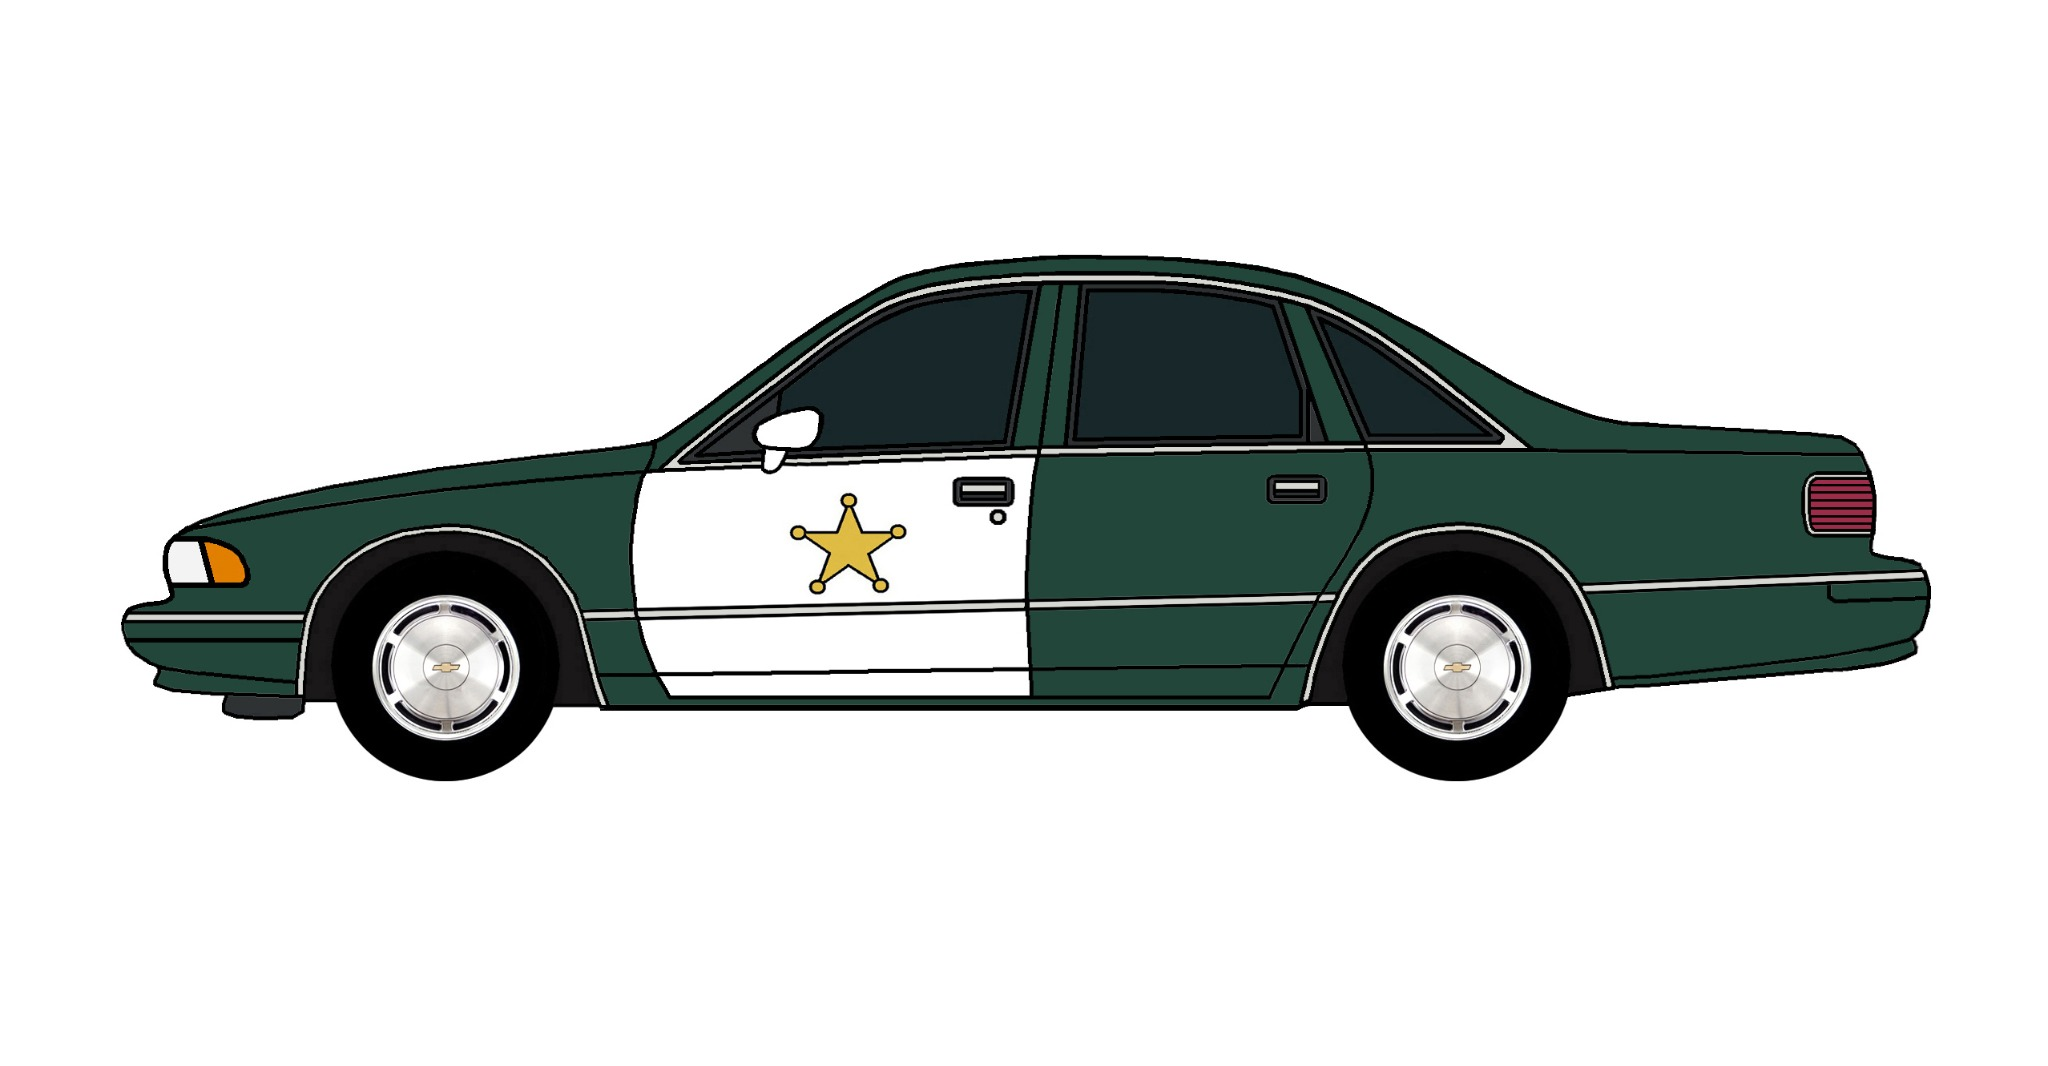 1994 Chevy Caprice Police Car HUNTER GREEN